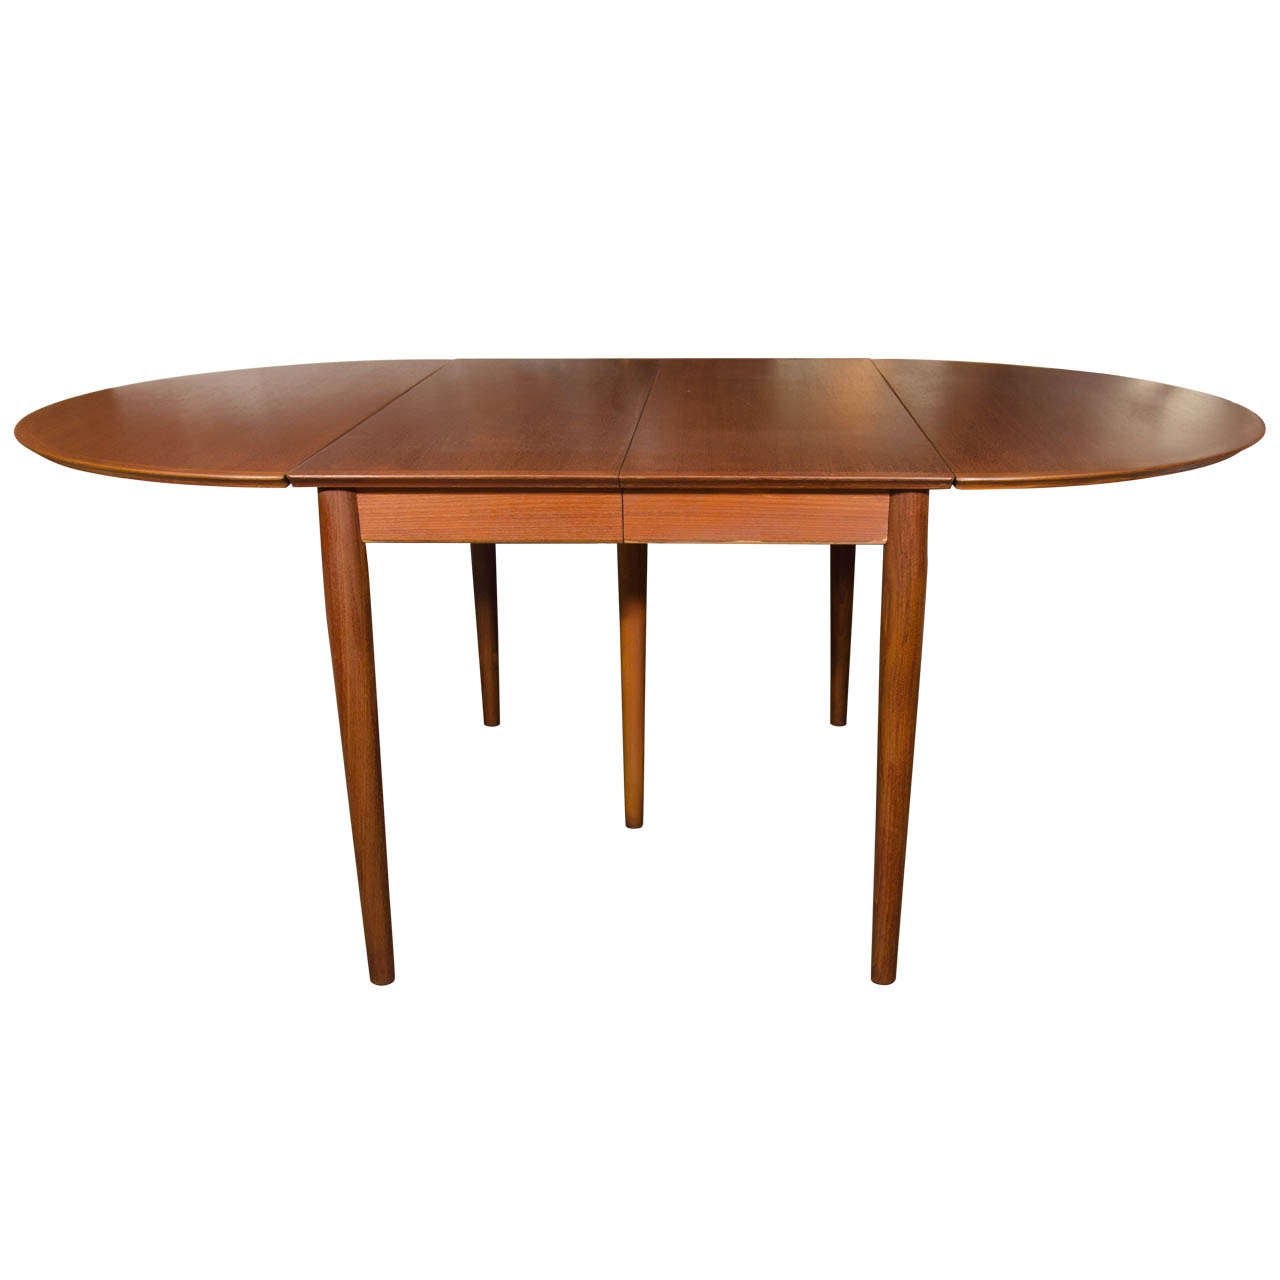 Danish modern teak drop leaf extension dining table for for Modern dining tables sale